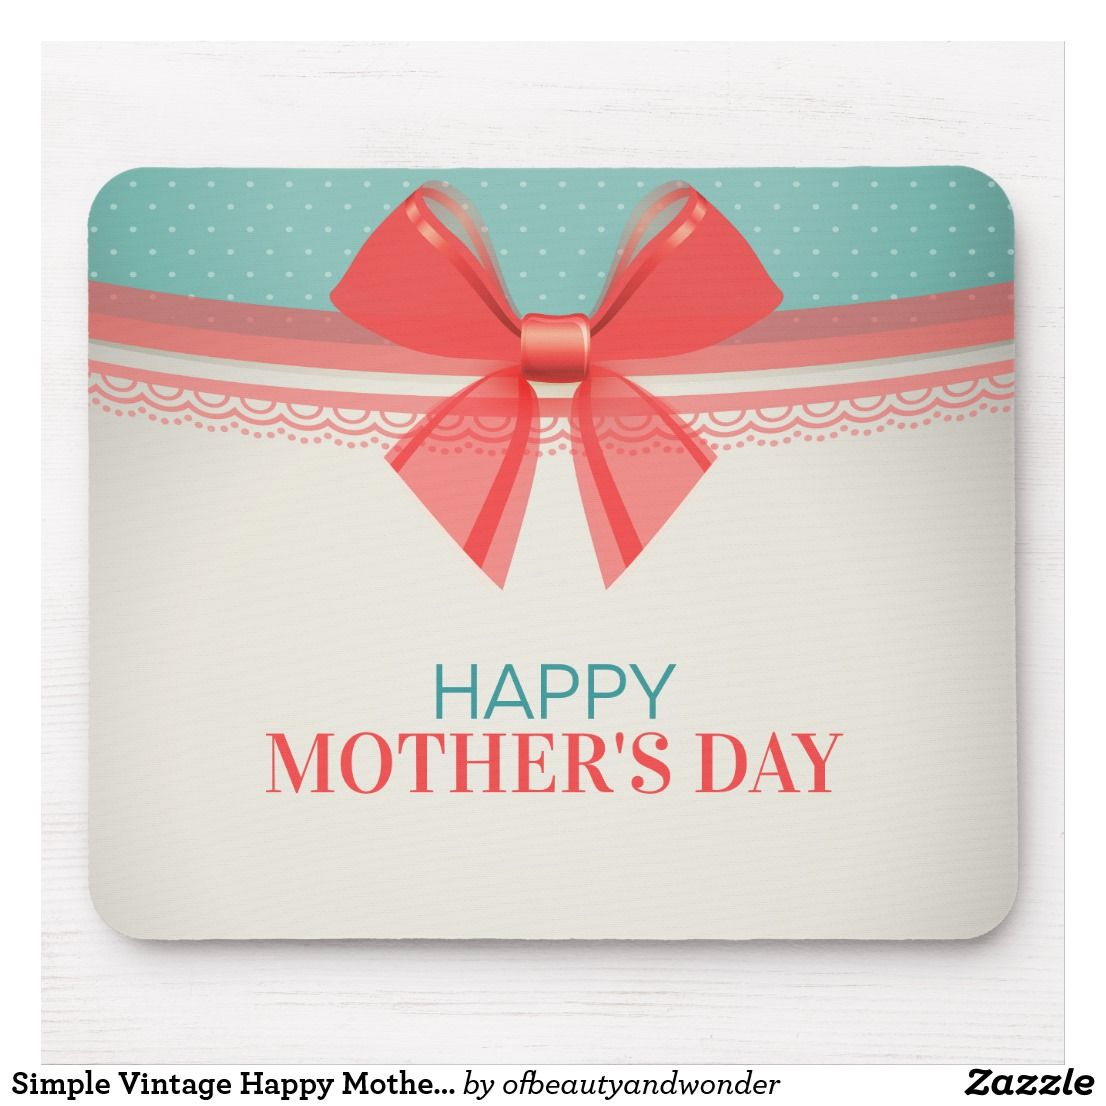 Simple Vintage Happy Mother's Day Mouse Pad Zazzle.com In 2020